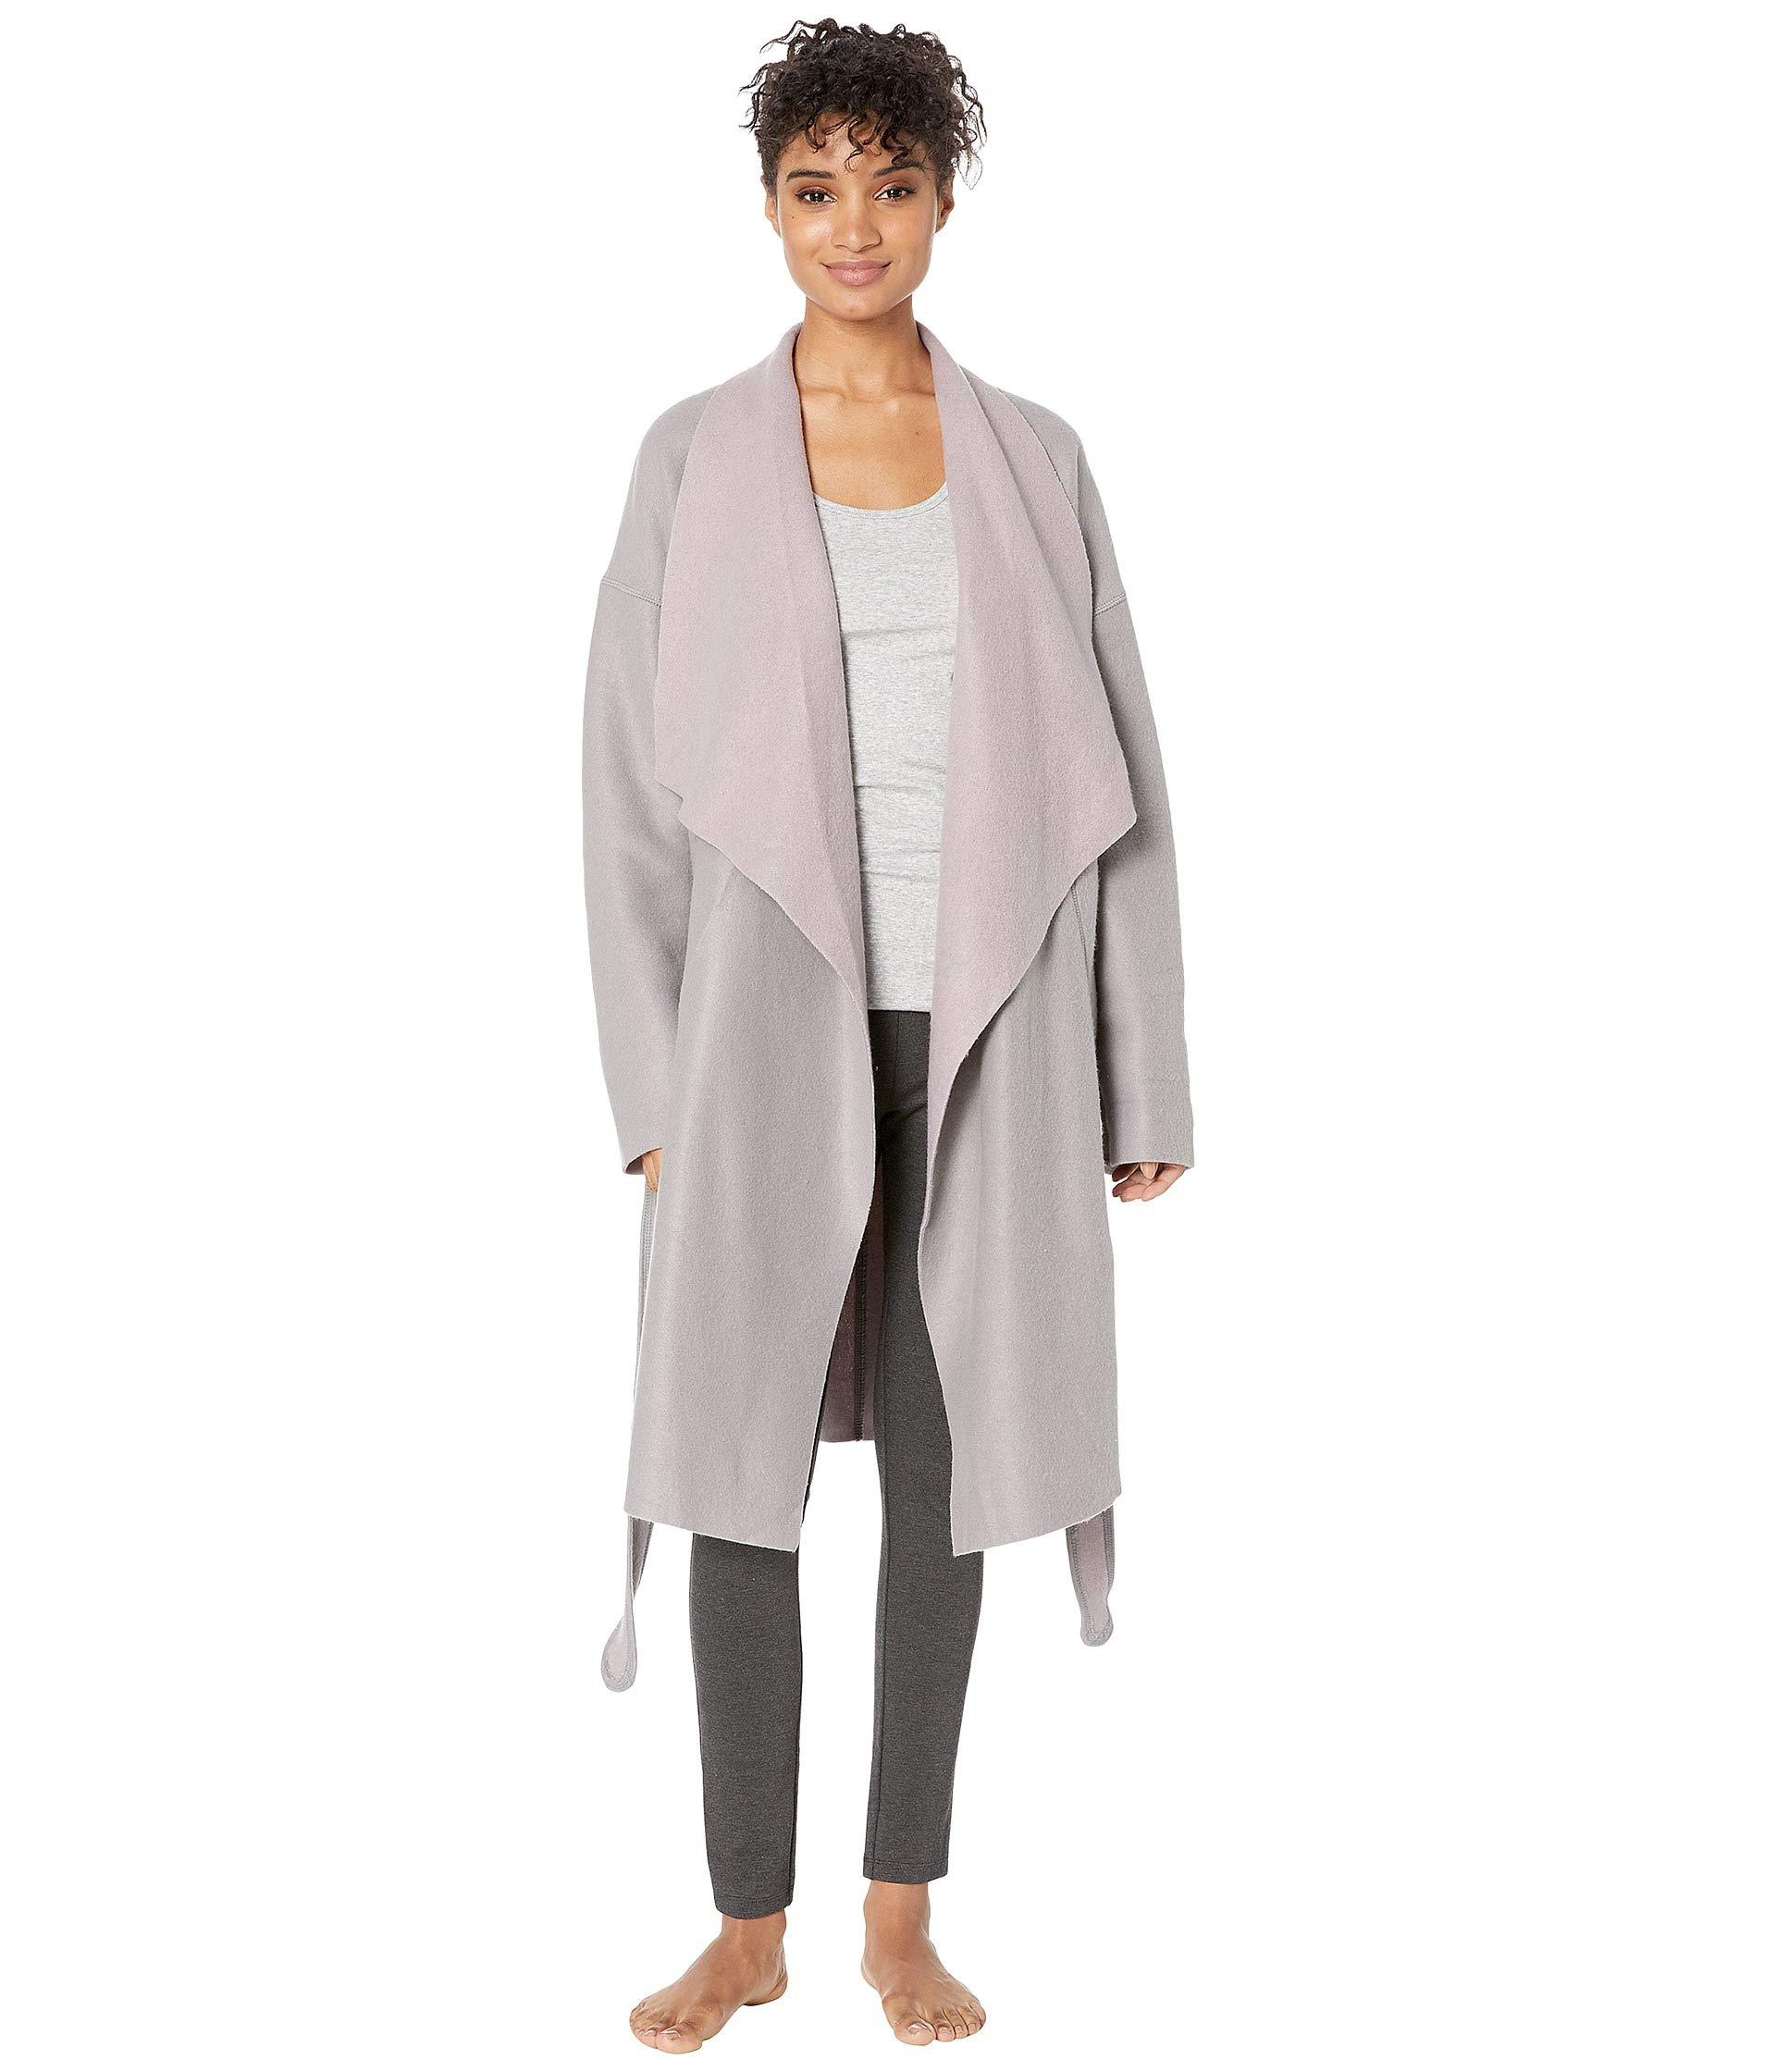 Lyst - Donna Karan Cocoon Robe in Gray - Save 25% cd42a3d22